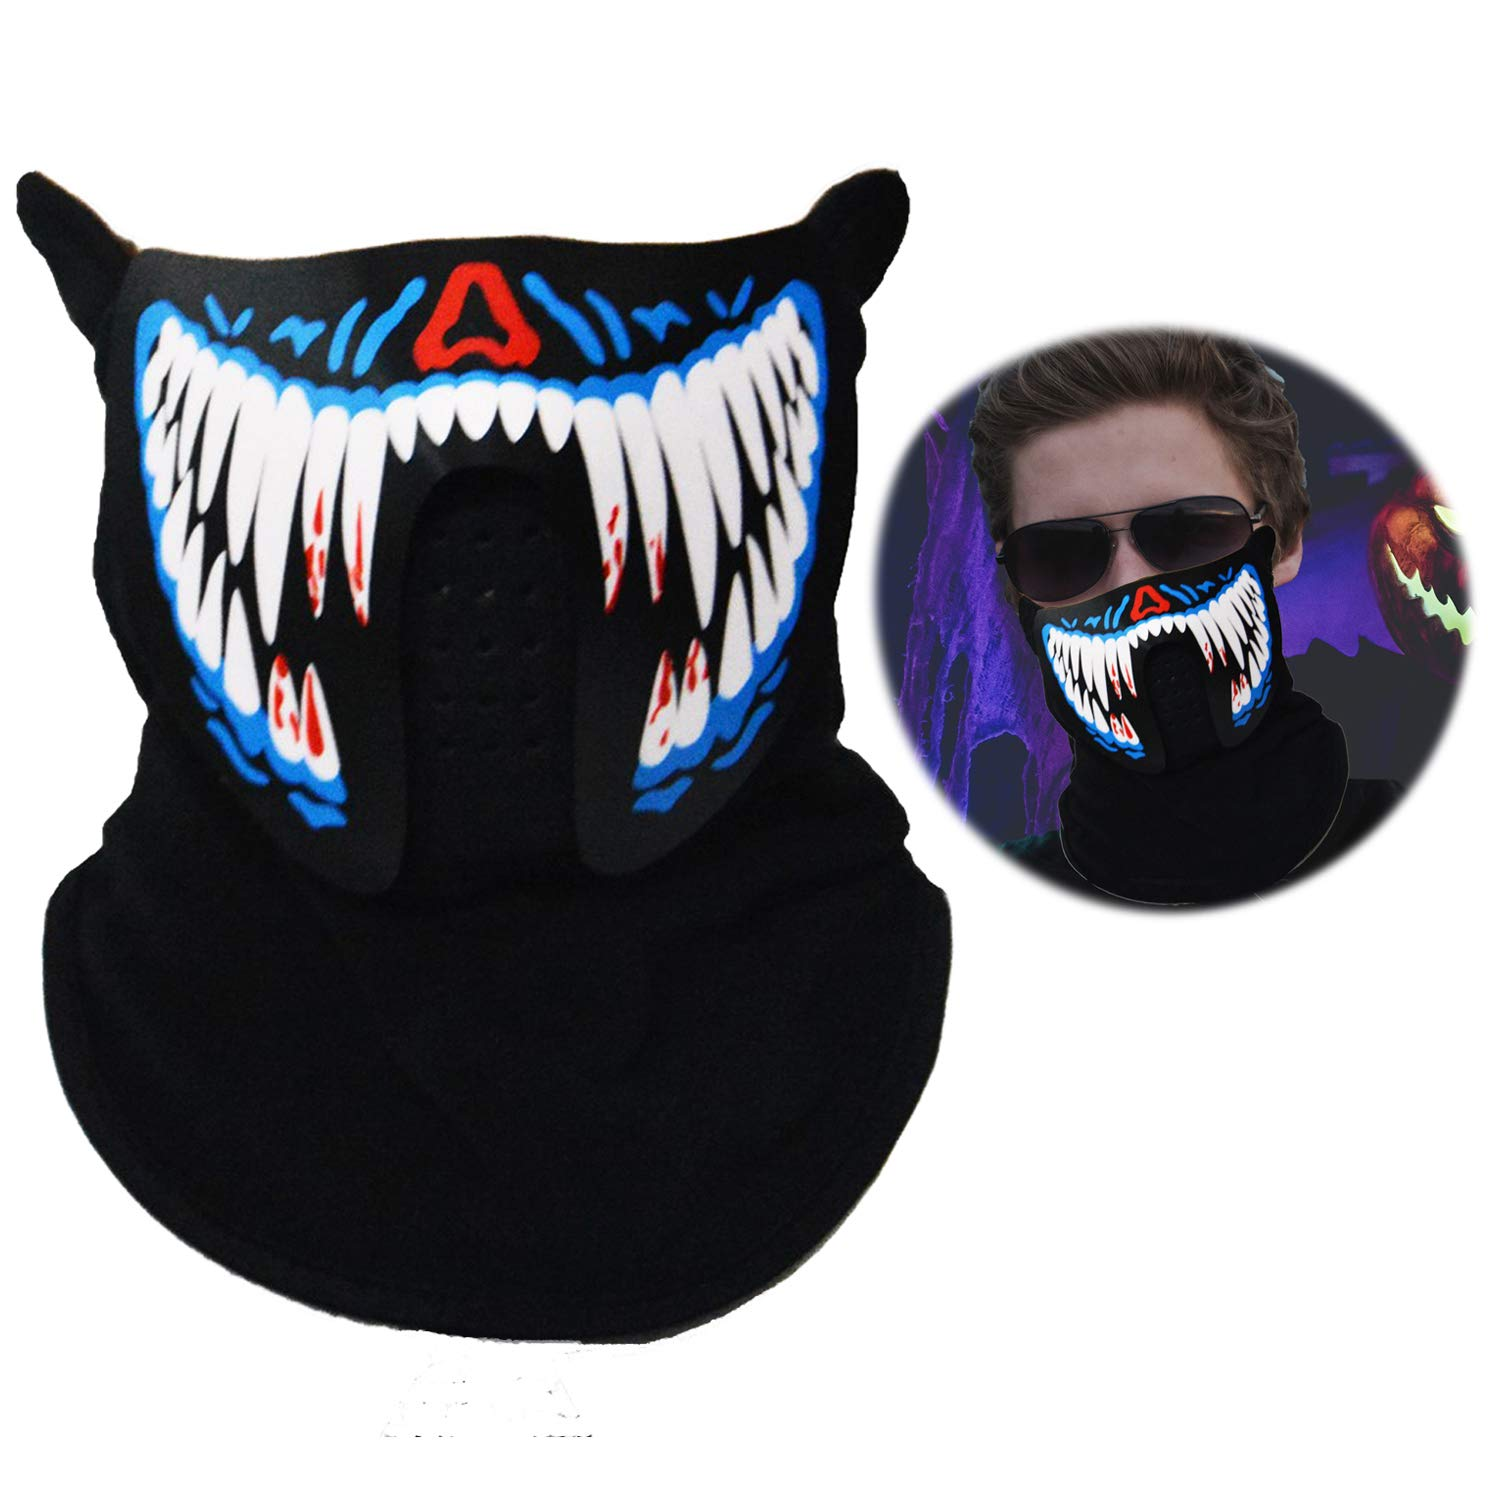 Halloween Mask Music LED Light Up Rave Mask Sound Actived Flashing Luminous Cool Party Mask